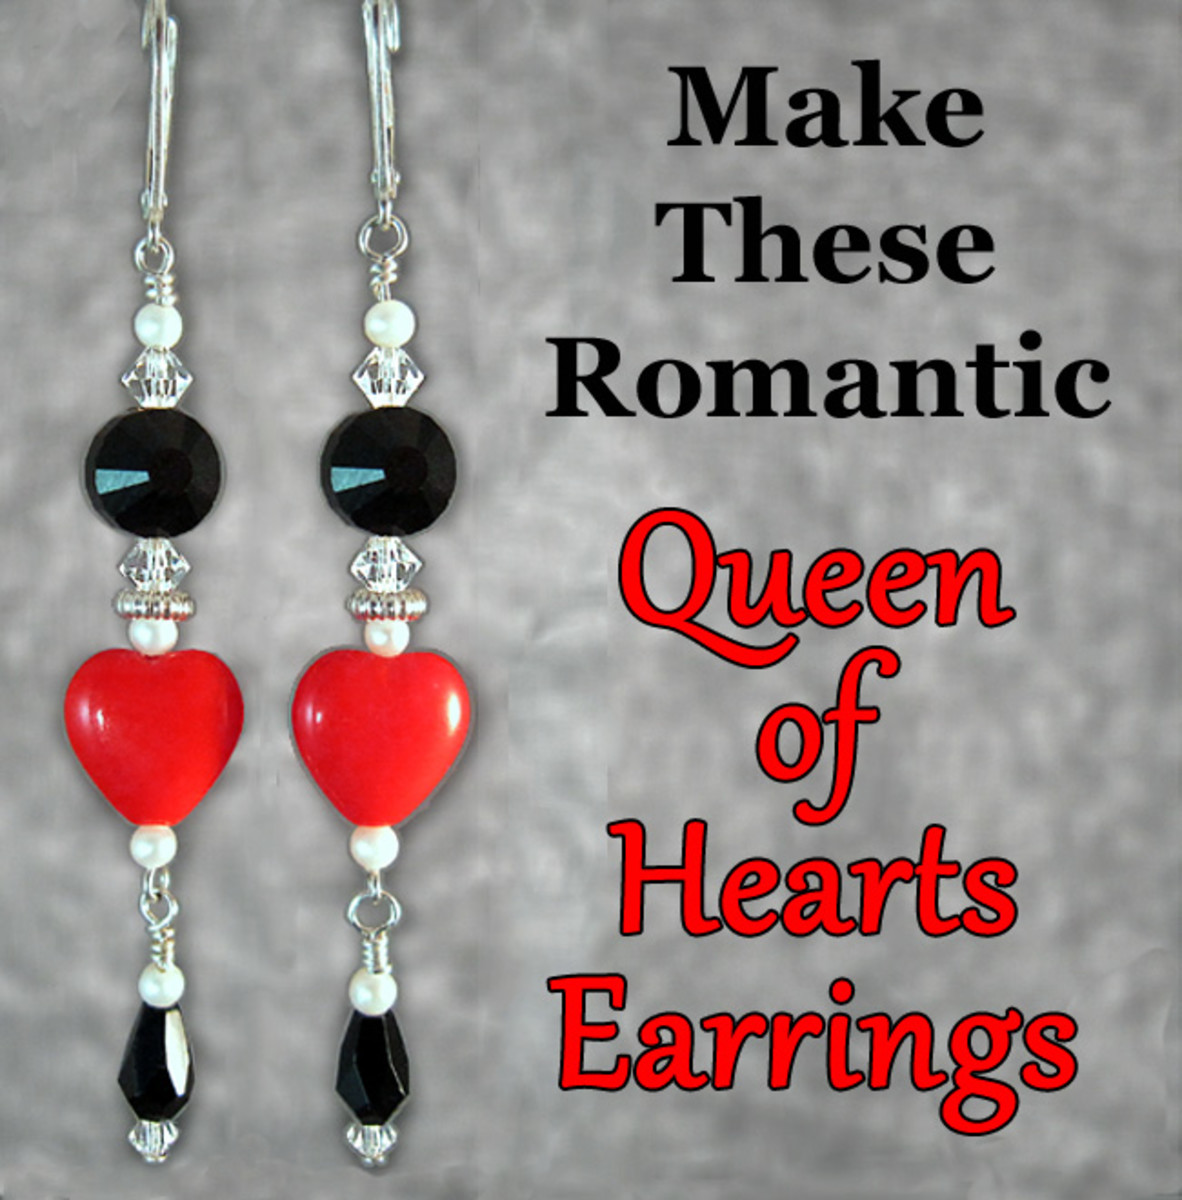 Elegant and Romantic Heart Earrings to Make for Yourself or Someone Special